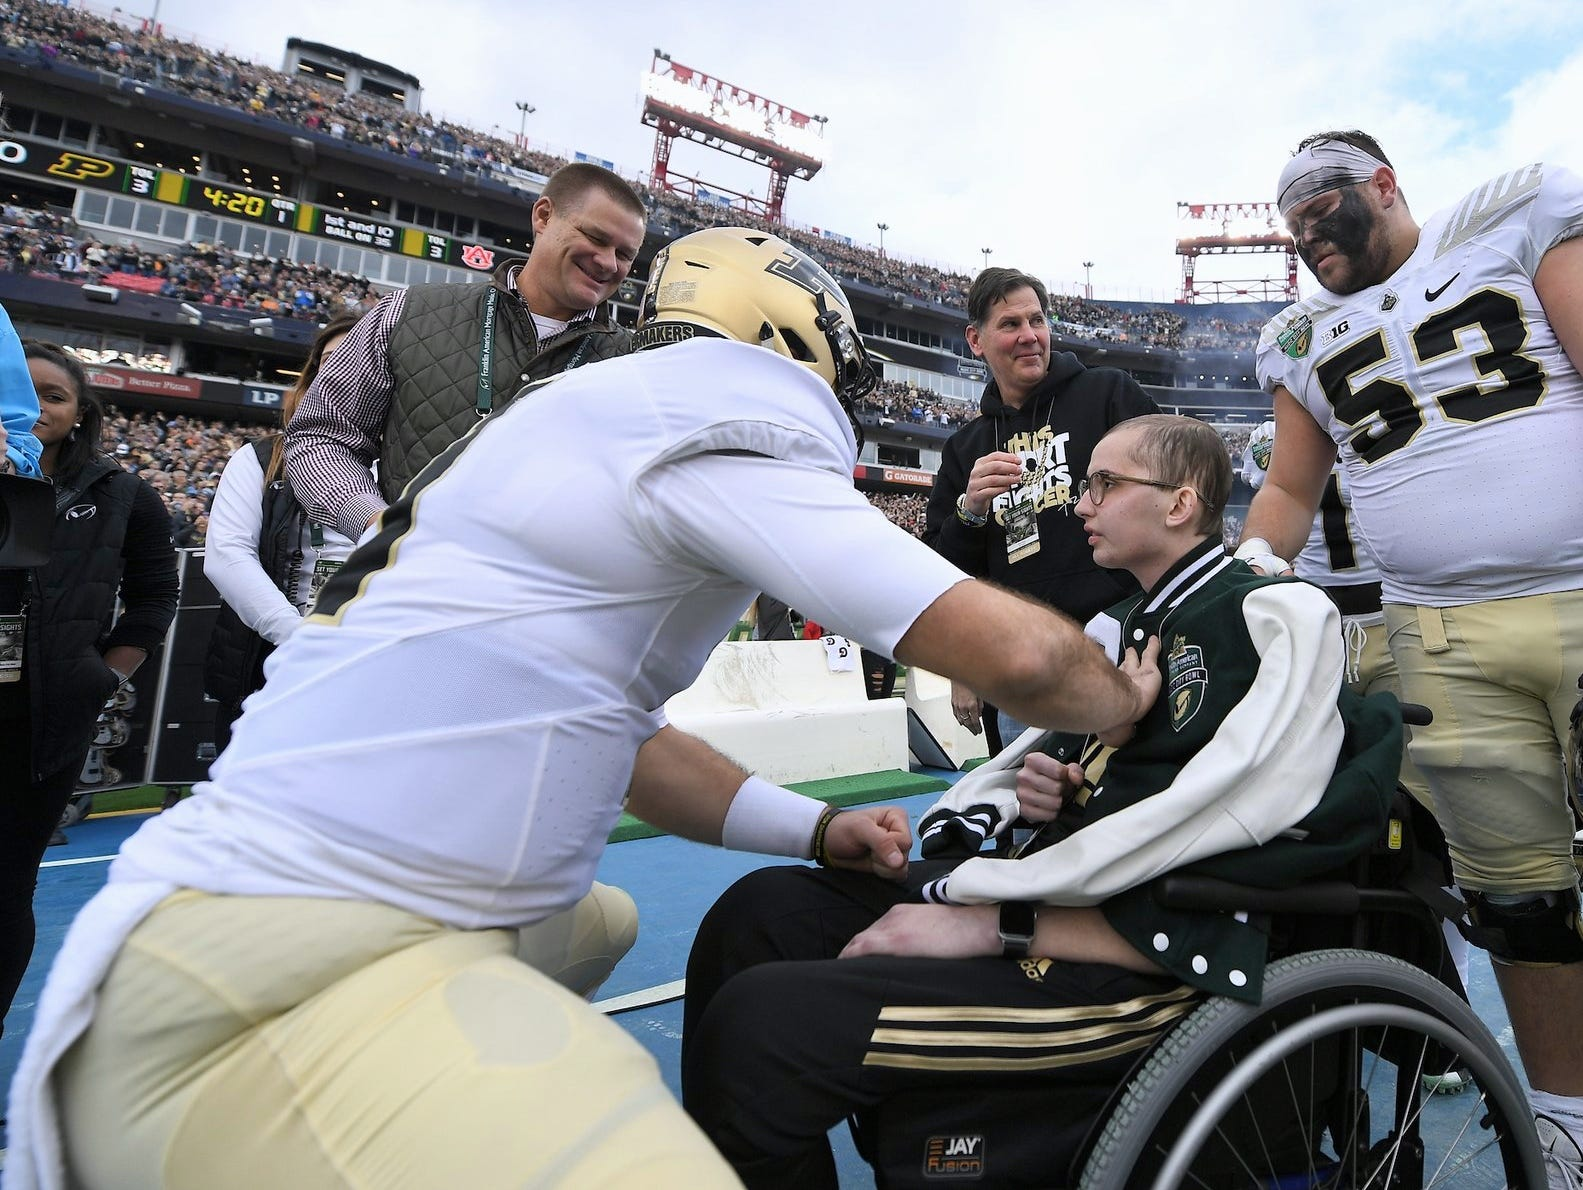 Purdue football players, including No. 53 Kirk Barron, great Tyler Trent at the Music City Bowl where Purdue football faced Auburn on Dec. 28, 2018, at Nissan Stadium in Nashville, Tennessee.